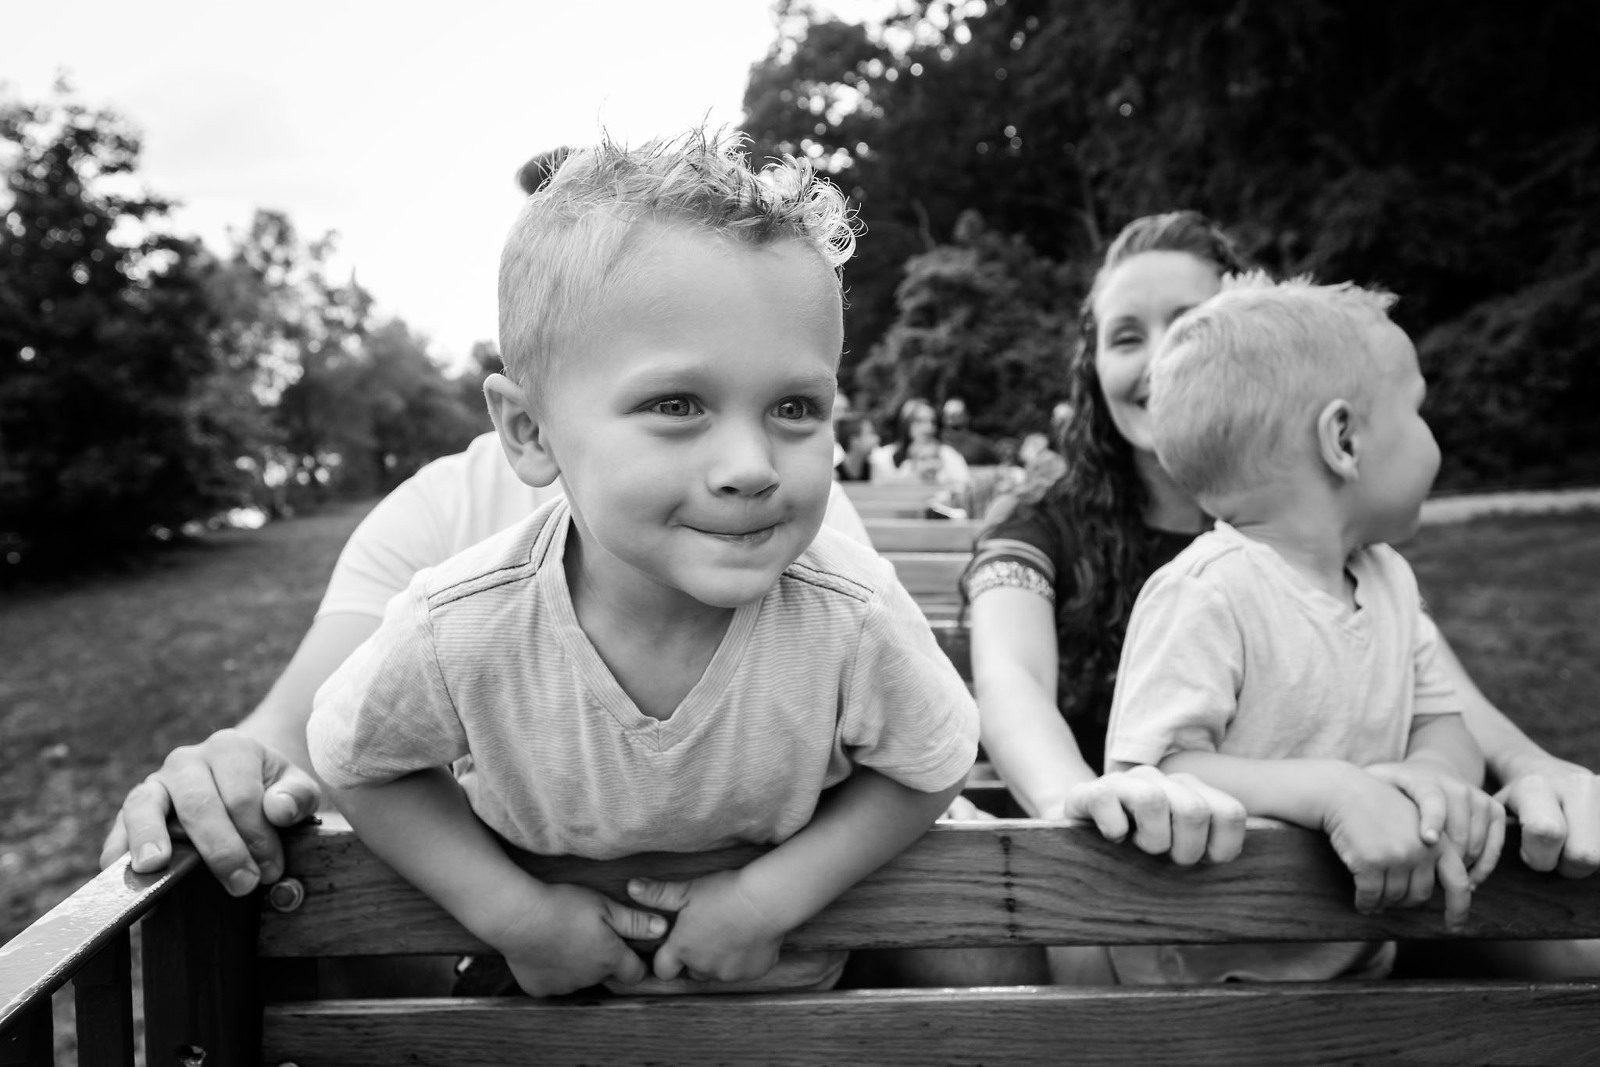 A Day in the Life Family Documentary photo sessions in Fort Wayne, Indiana by Kasey Wallace Photography. Family photography, children's photography, documentary photography.